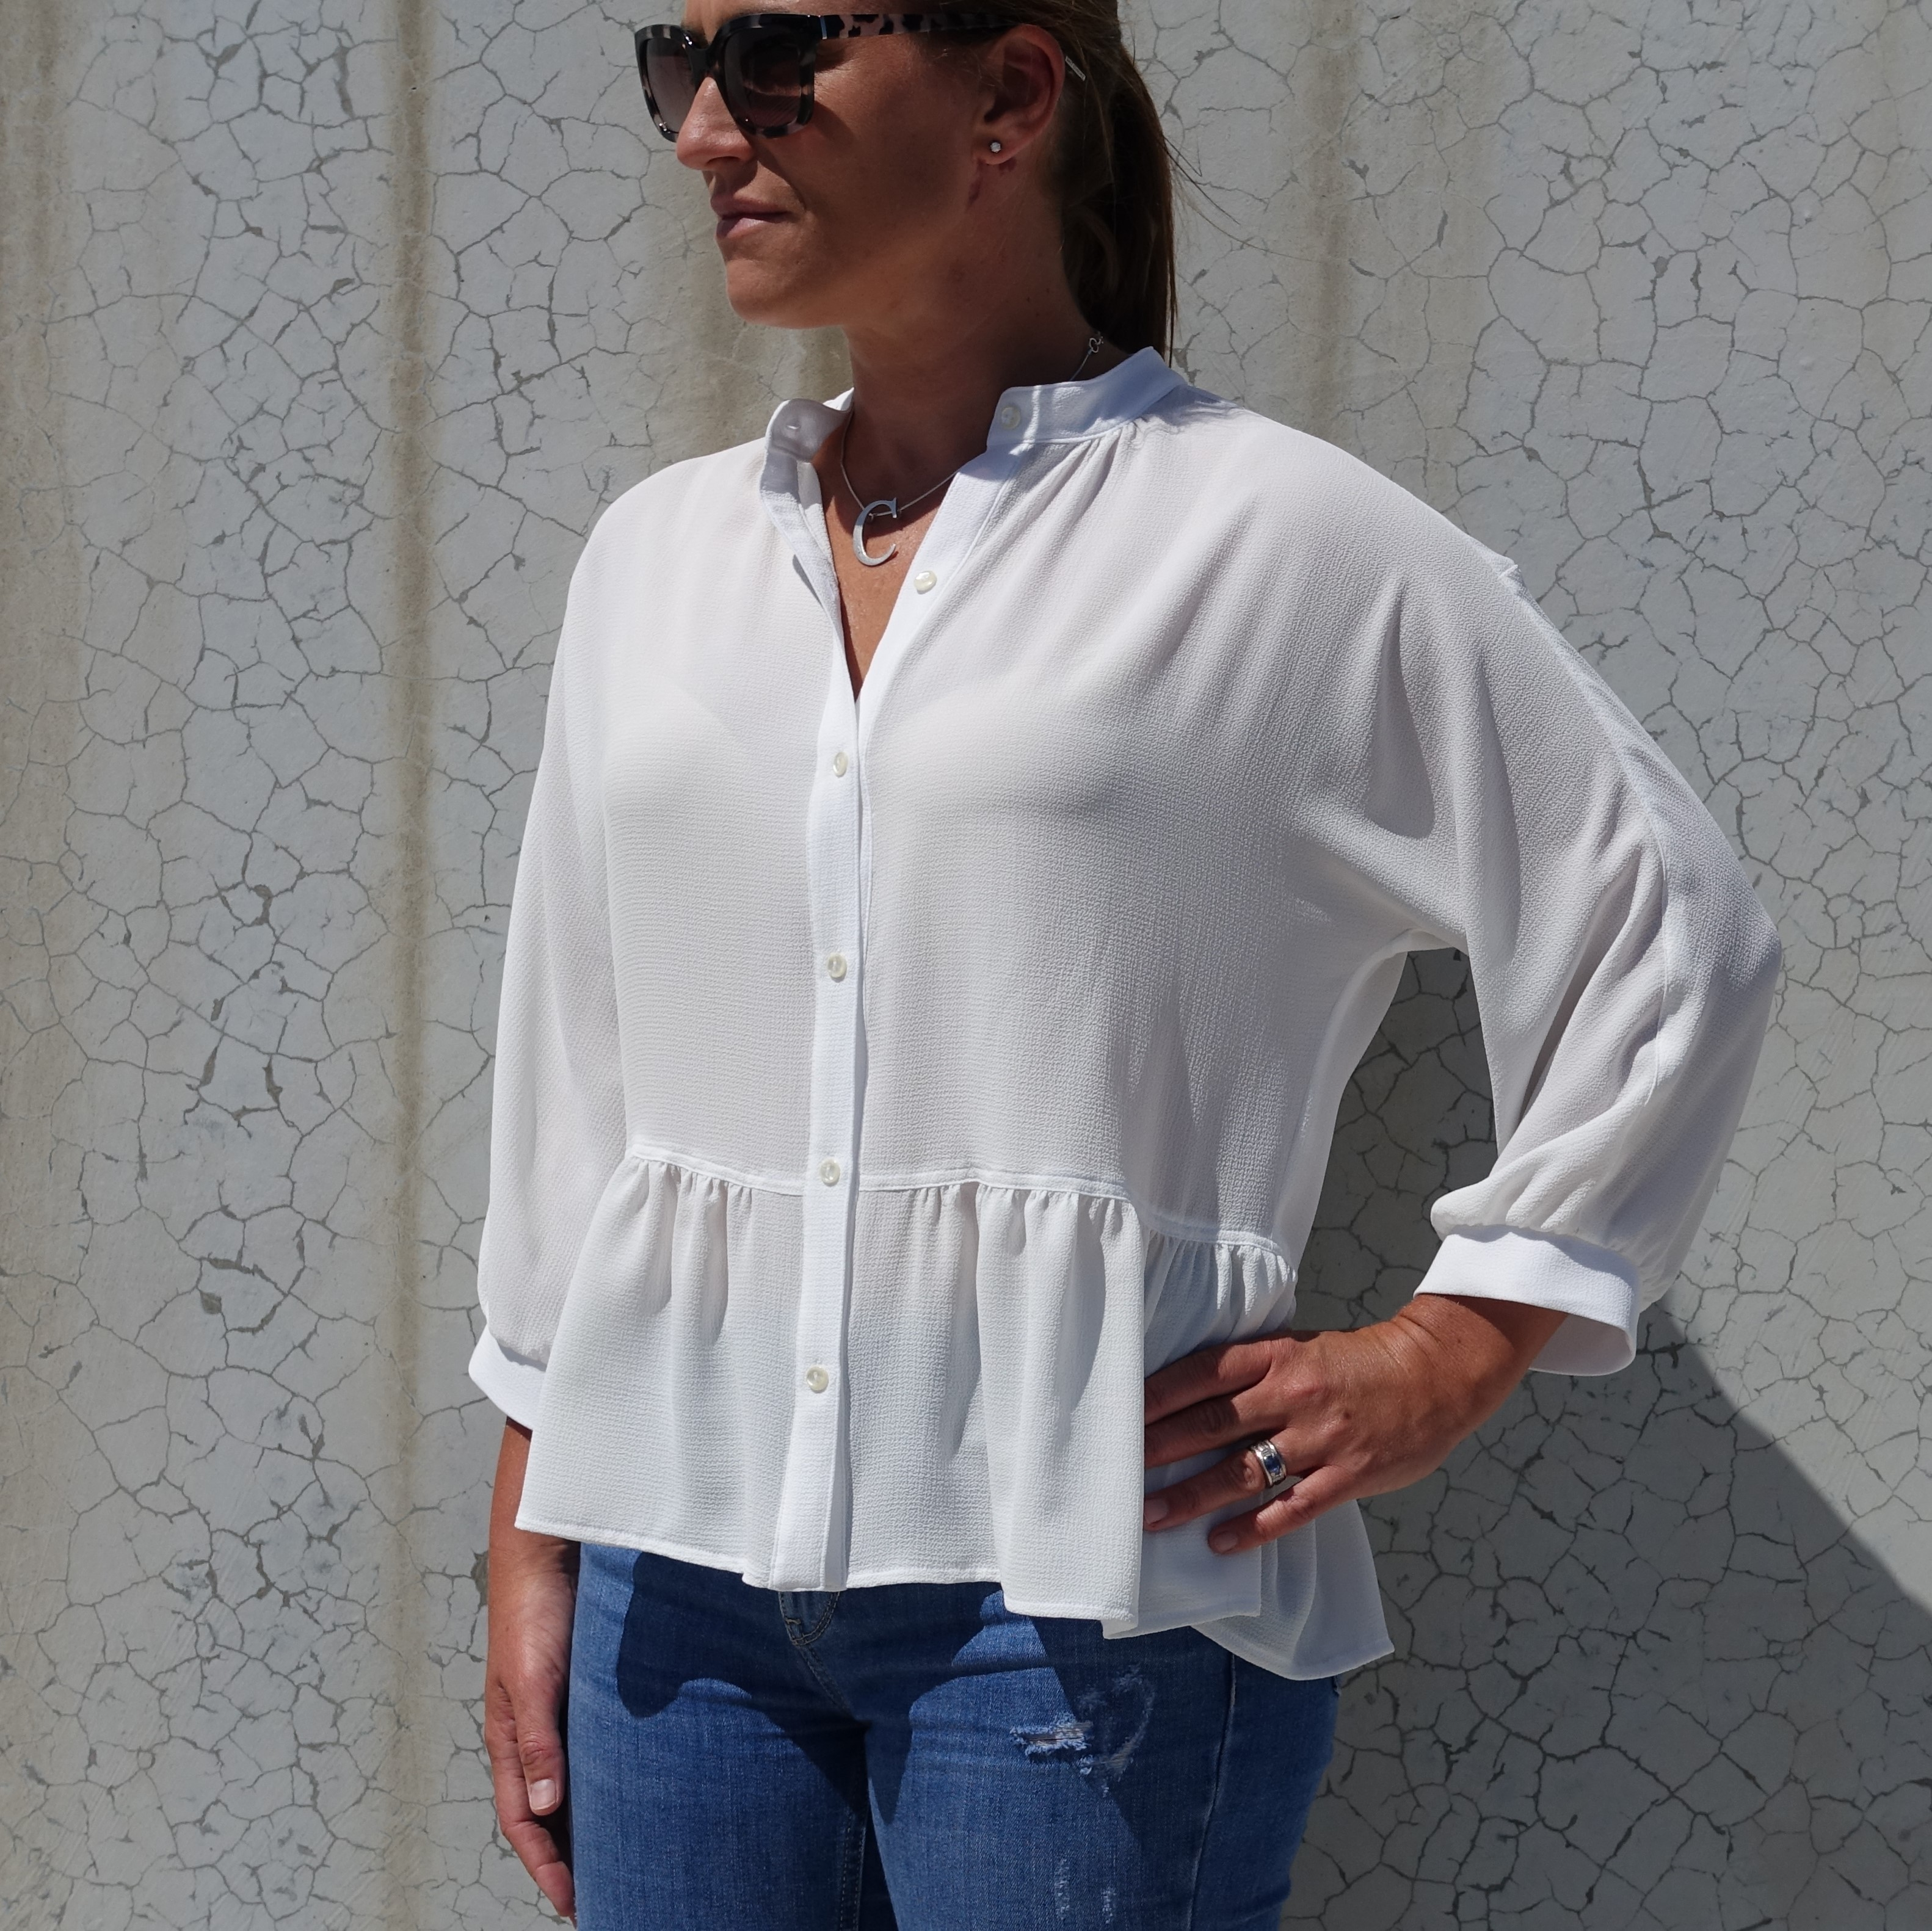 Blossom Woven Top Sewing Pattern by Style Arc